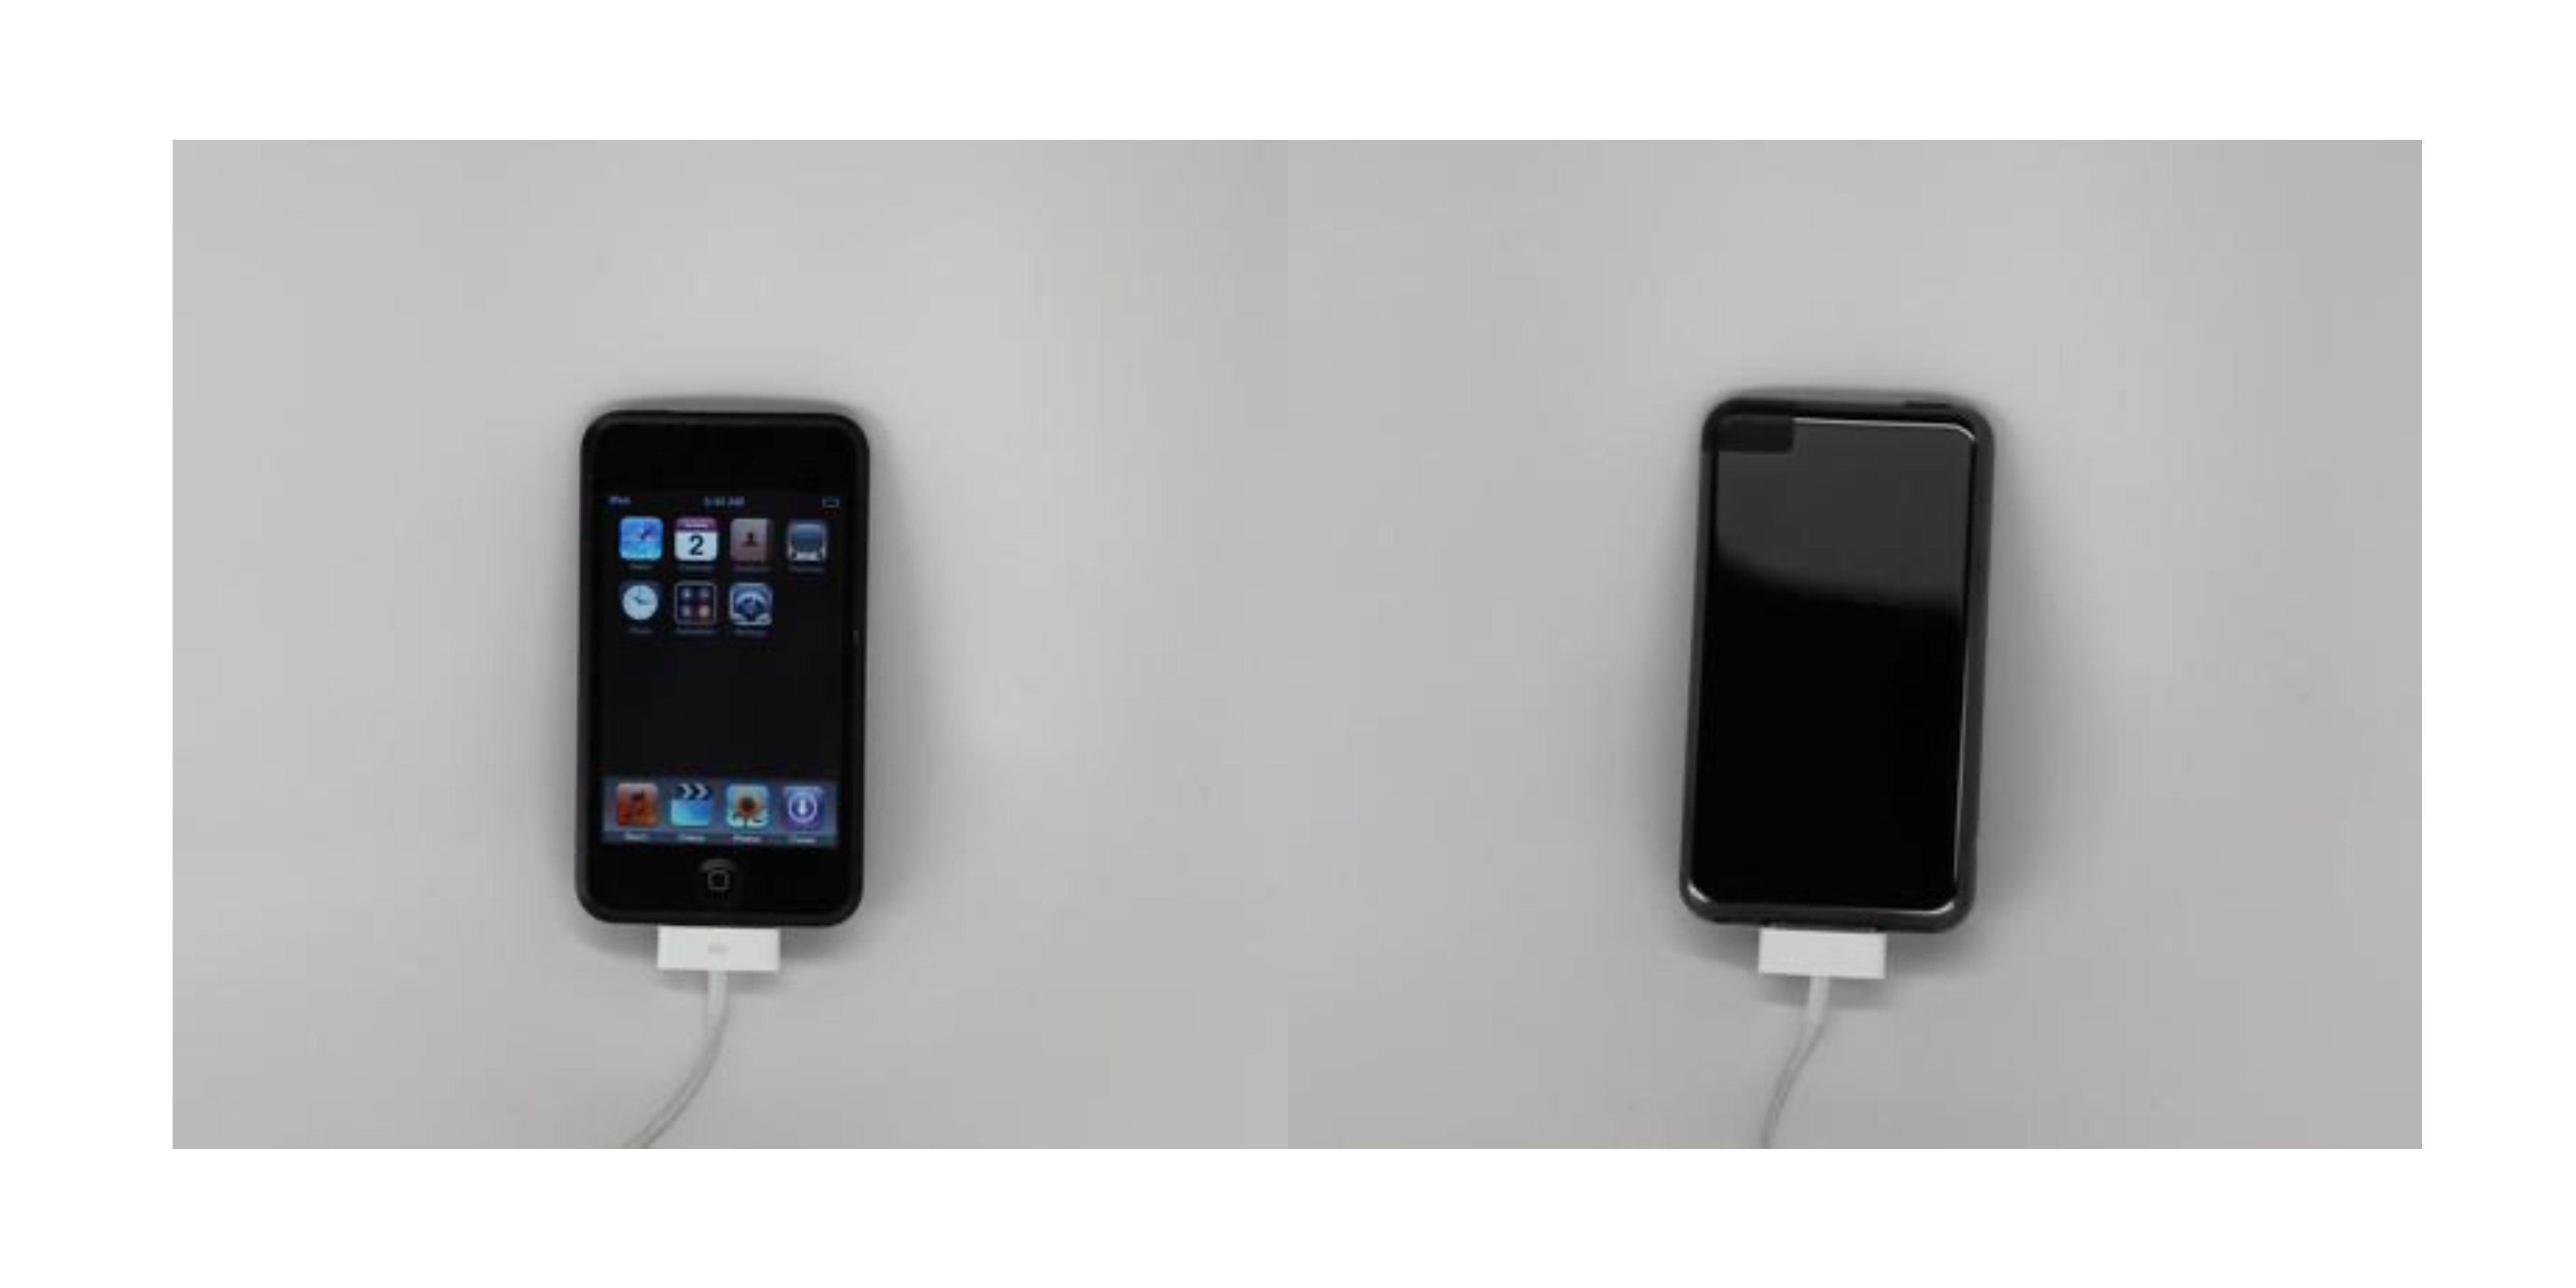 Images show unreleased first-gen iPod touch prototype with glossy black design